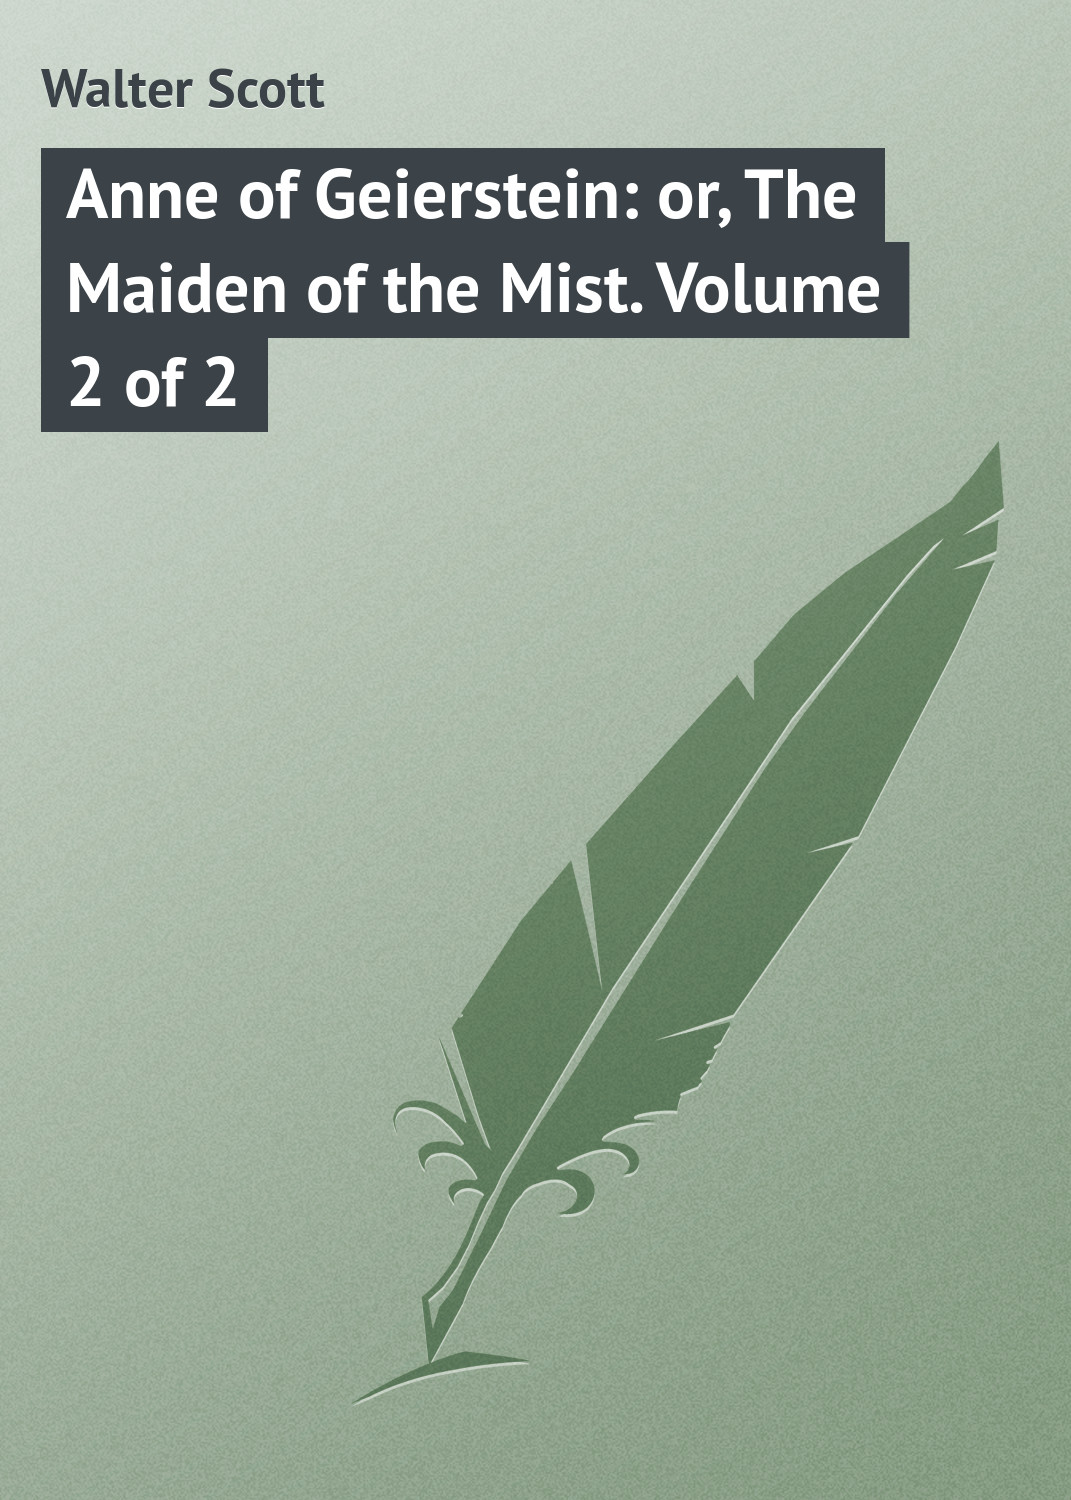 Walter Scott Anne of Geierstein: or, The Maiden of the Mist. Volume 2 of 2 walter scott a legend of montrose